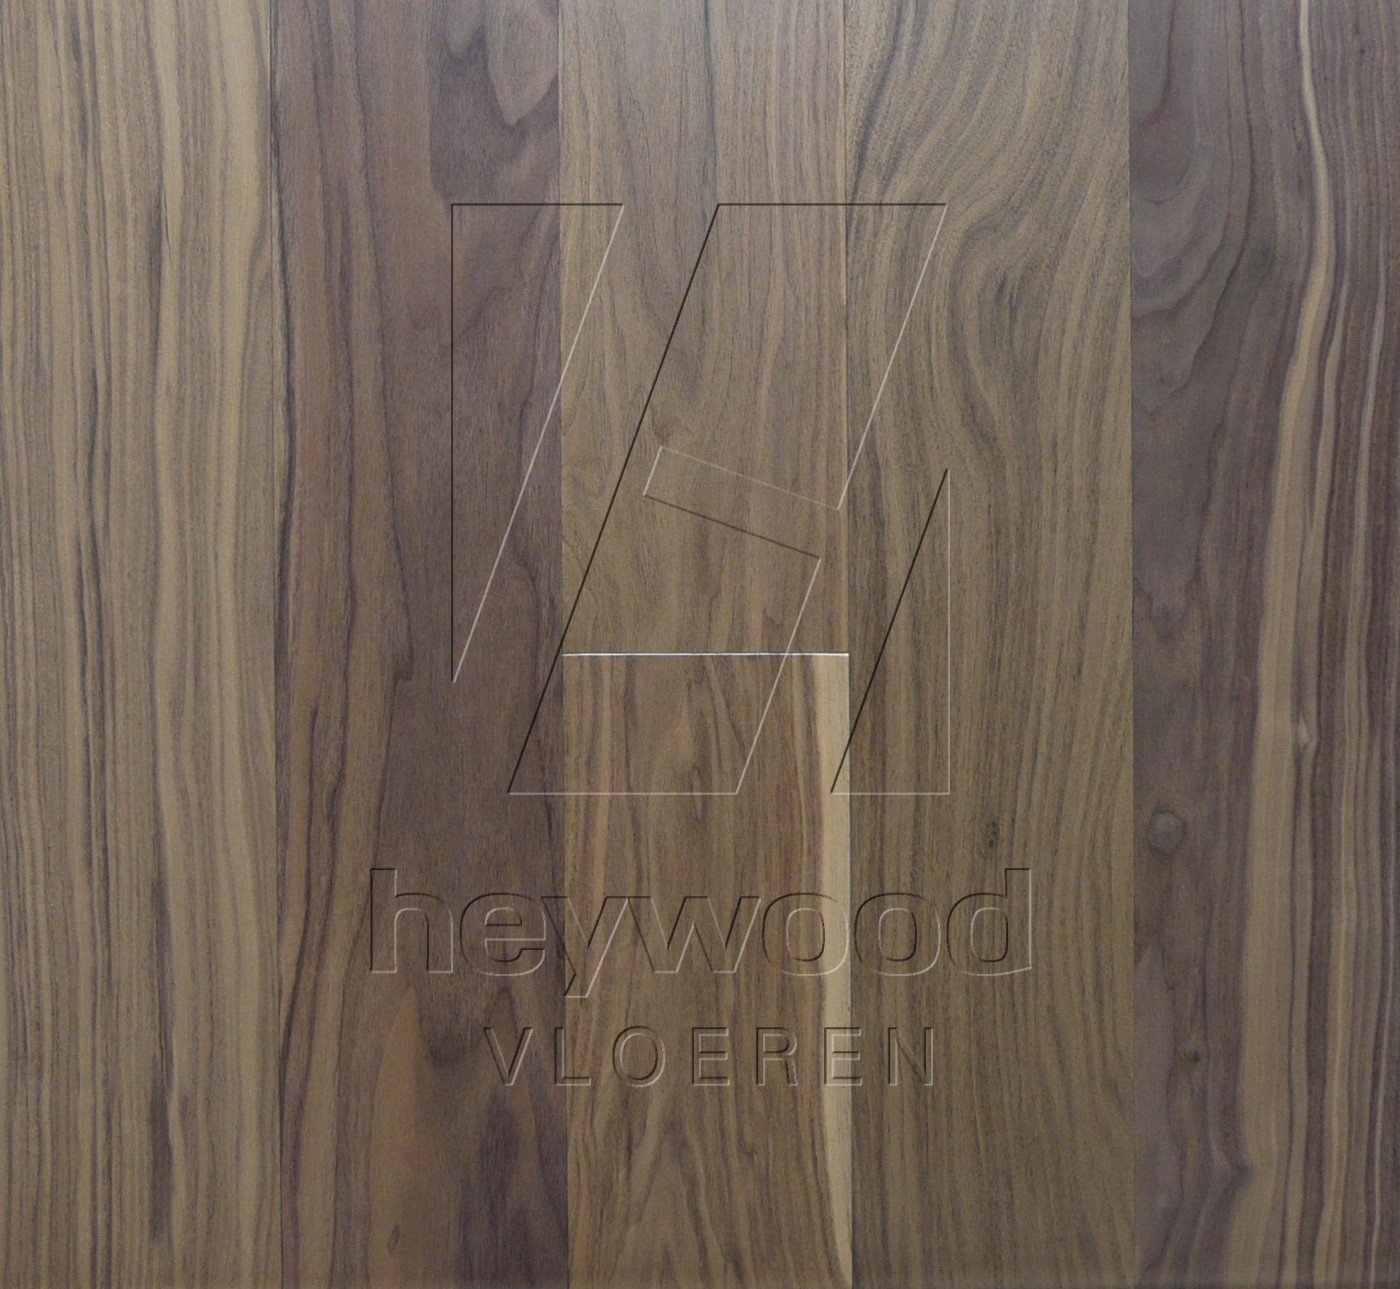 Walnut in Other Wood Species of Bespoke Wooden Floors